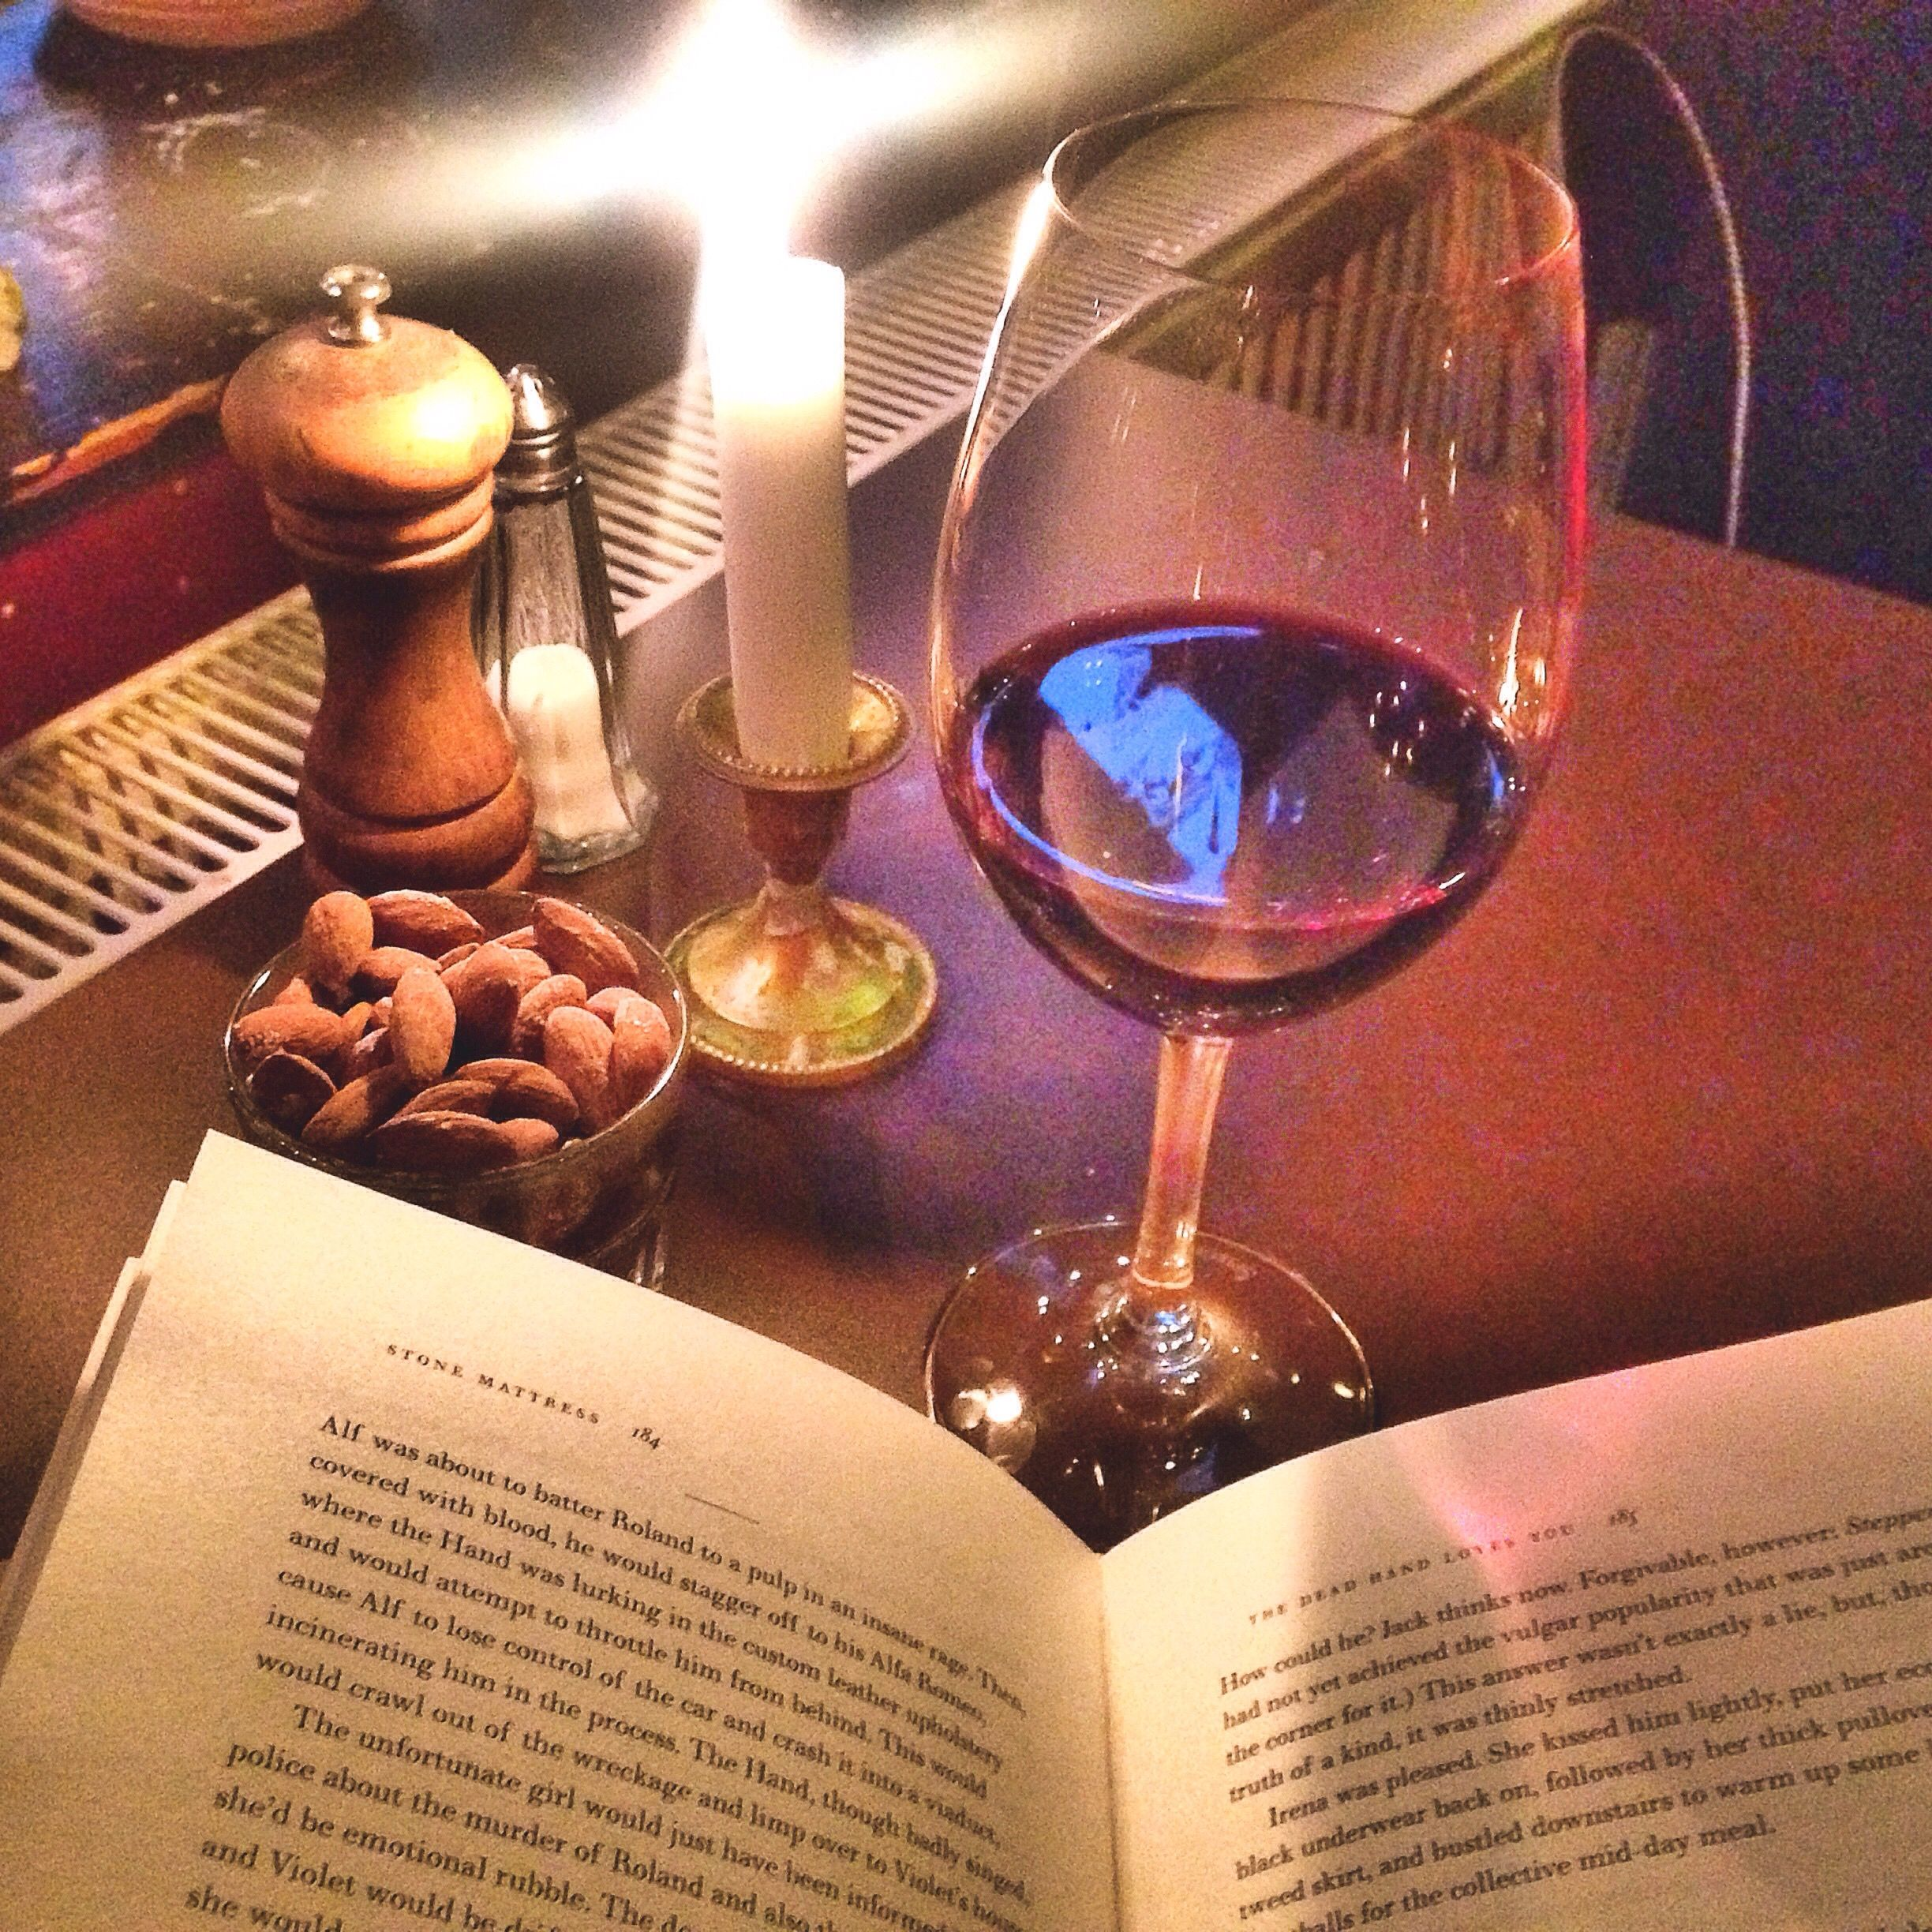 Happy National Bookloversday We Hope You Have A Nice Quiet Evening With A Good Book Humpday Weloveourresidents Waltham Theme Waltham Candlelight Wine